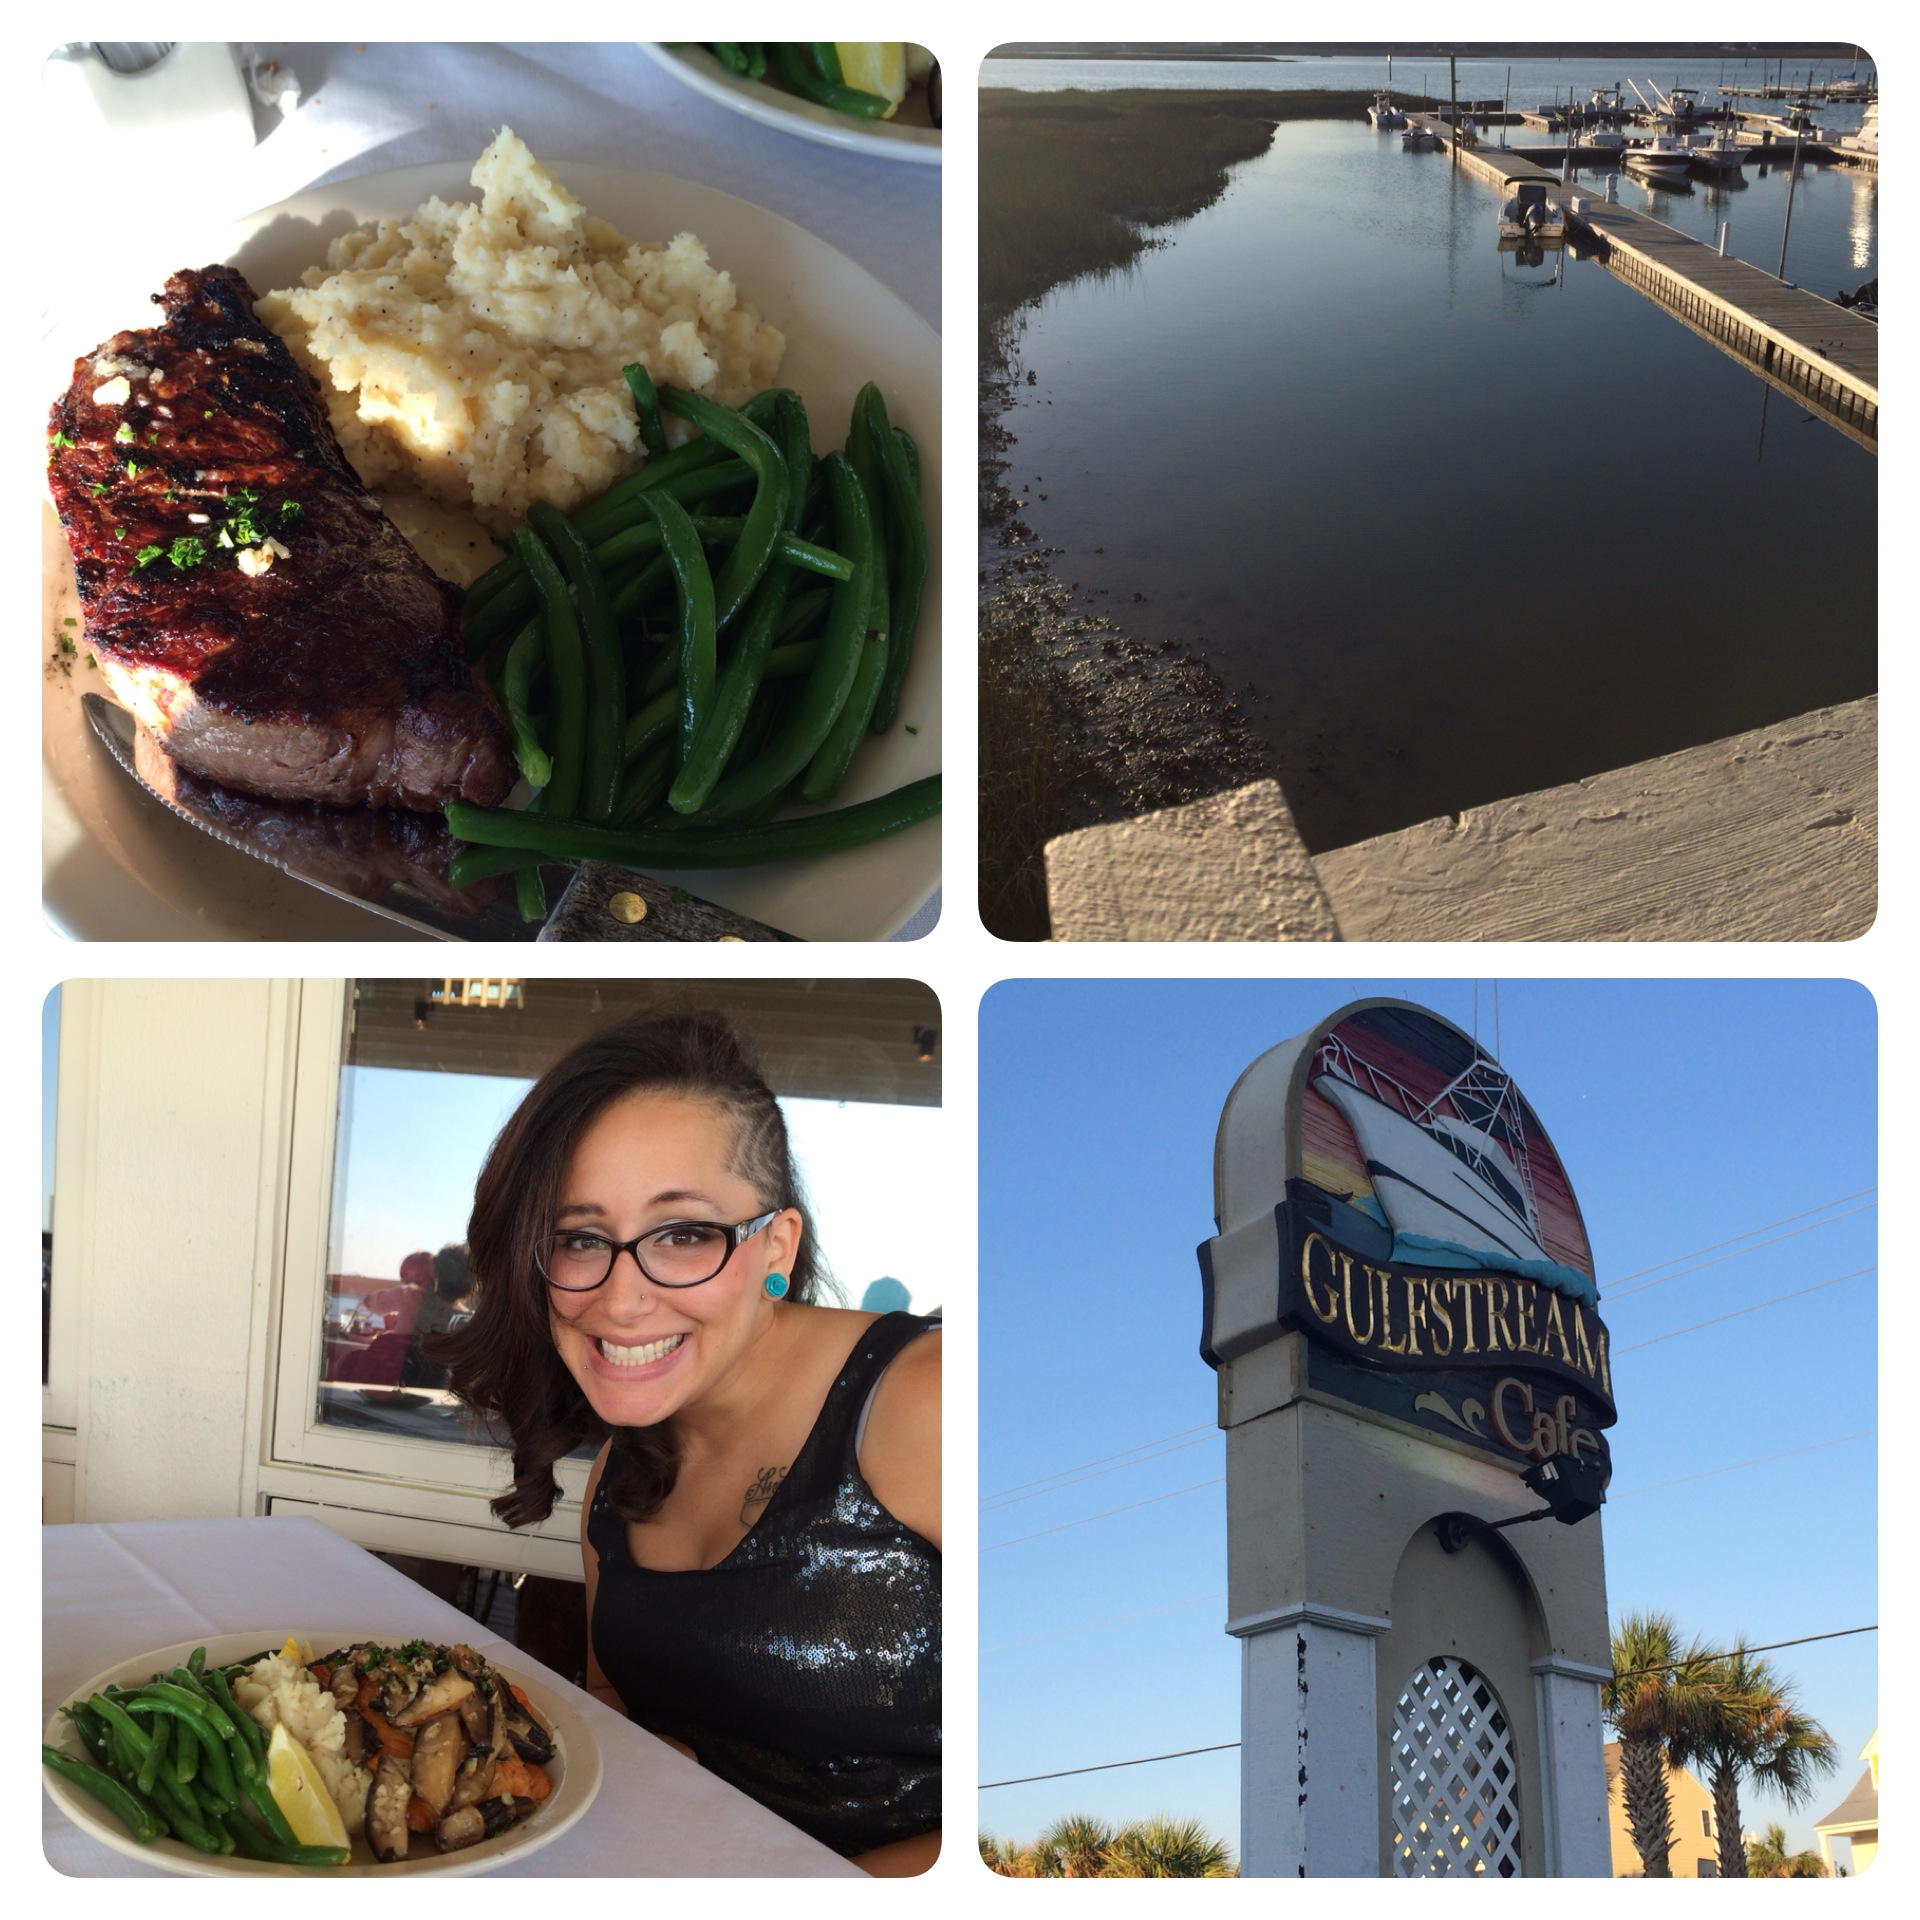 It was a very enjoyable dinner at the Gulfstream Café (clockwise: The view from the deck, the restaurant sign, Veronica with her salmon dinner, my steak!).